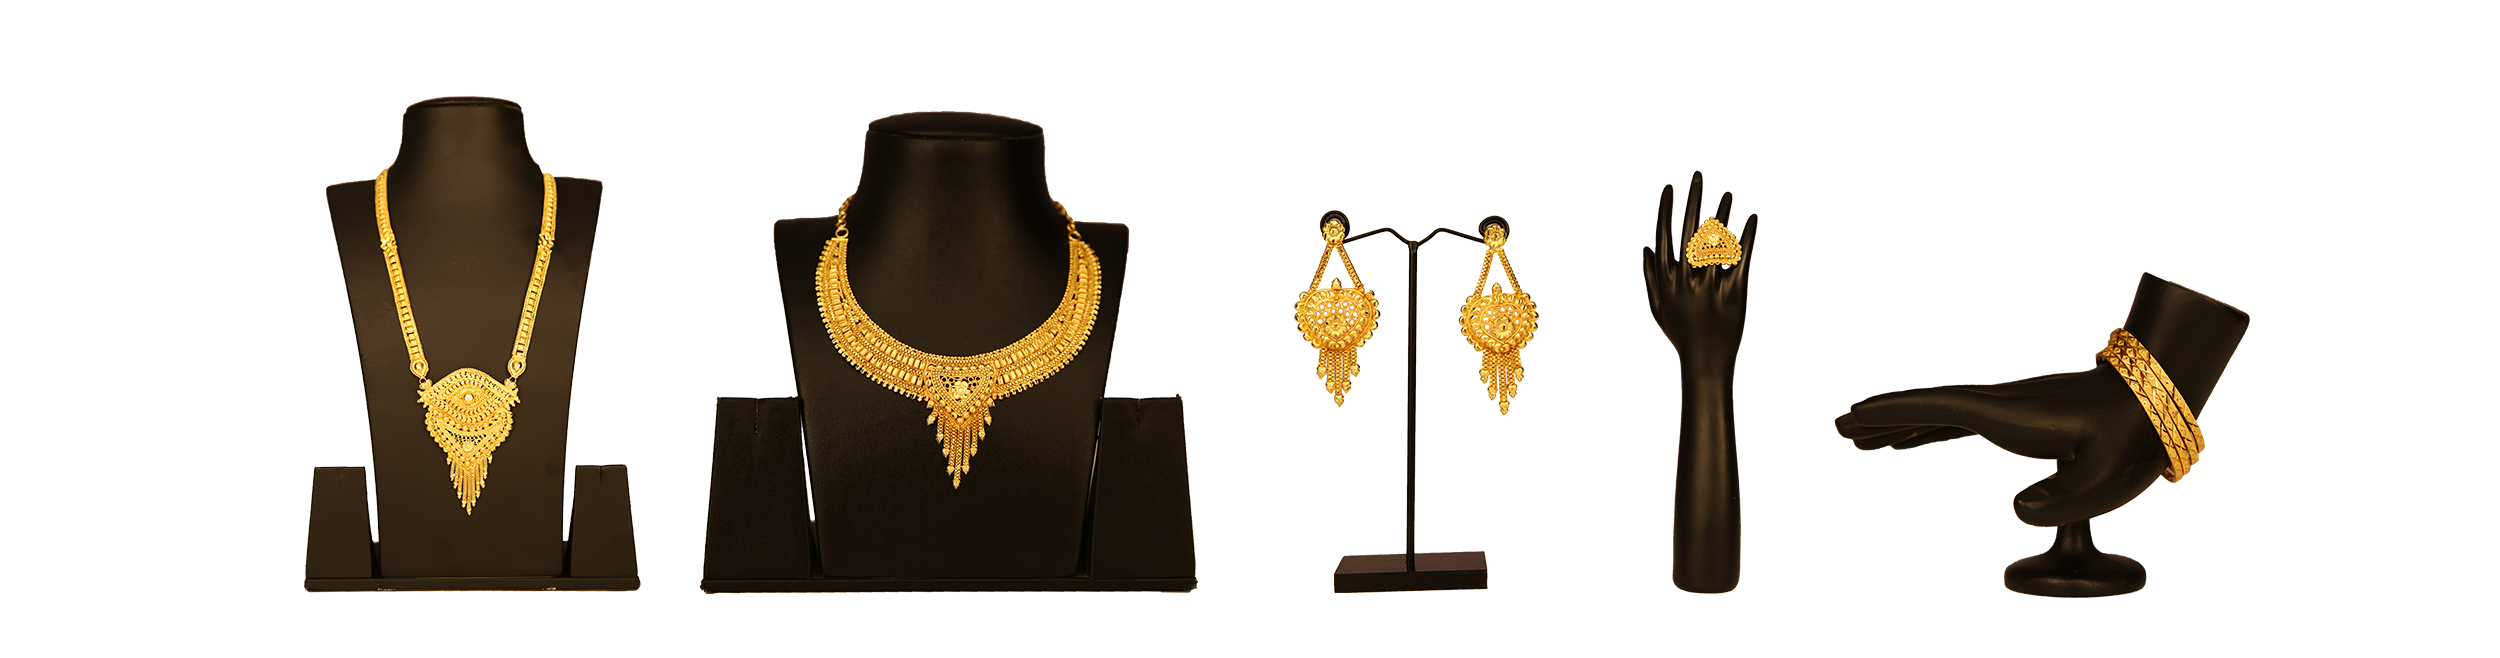 Necklace clipart gold traditional. Drop pattern jewellery collections